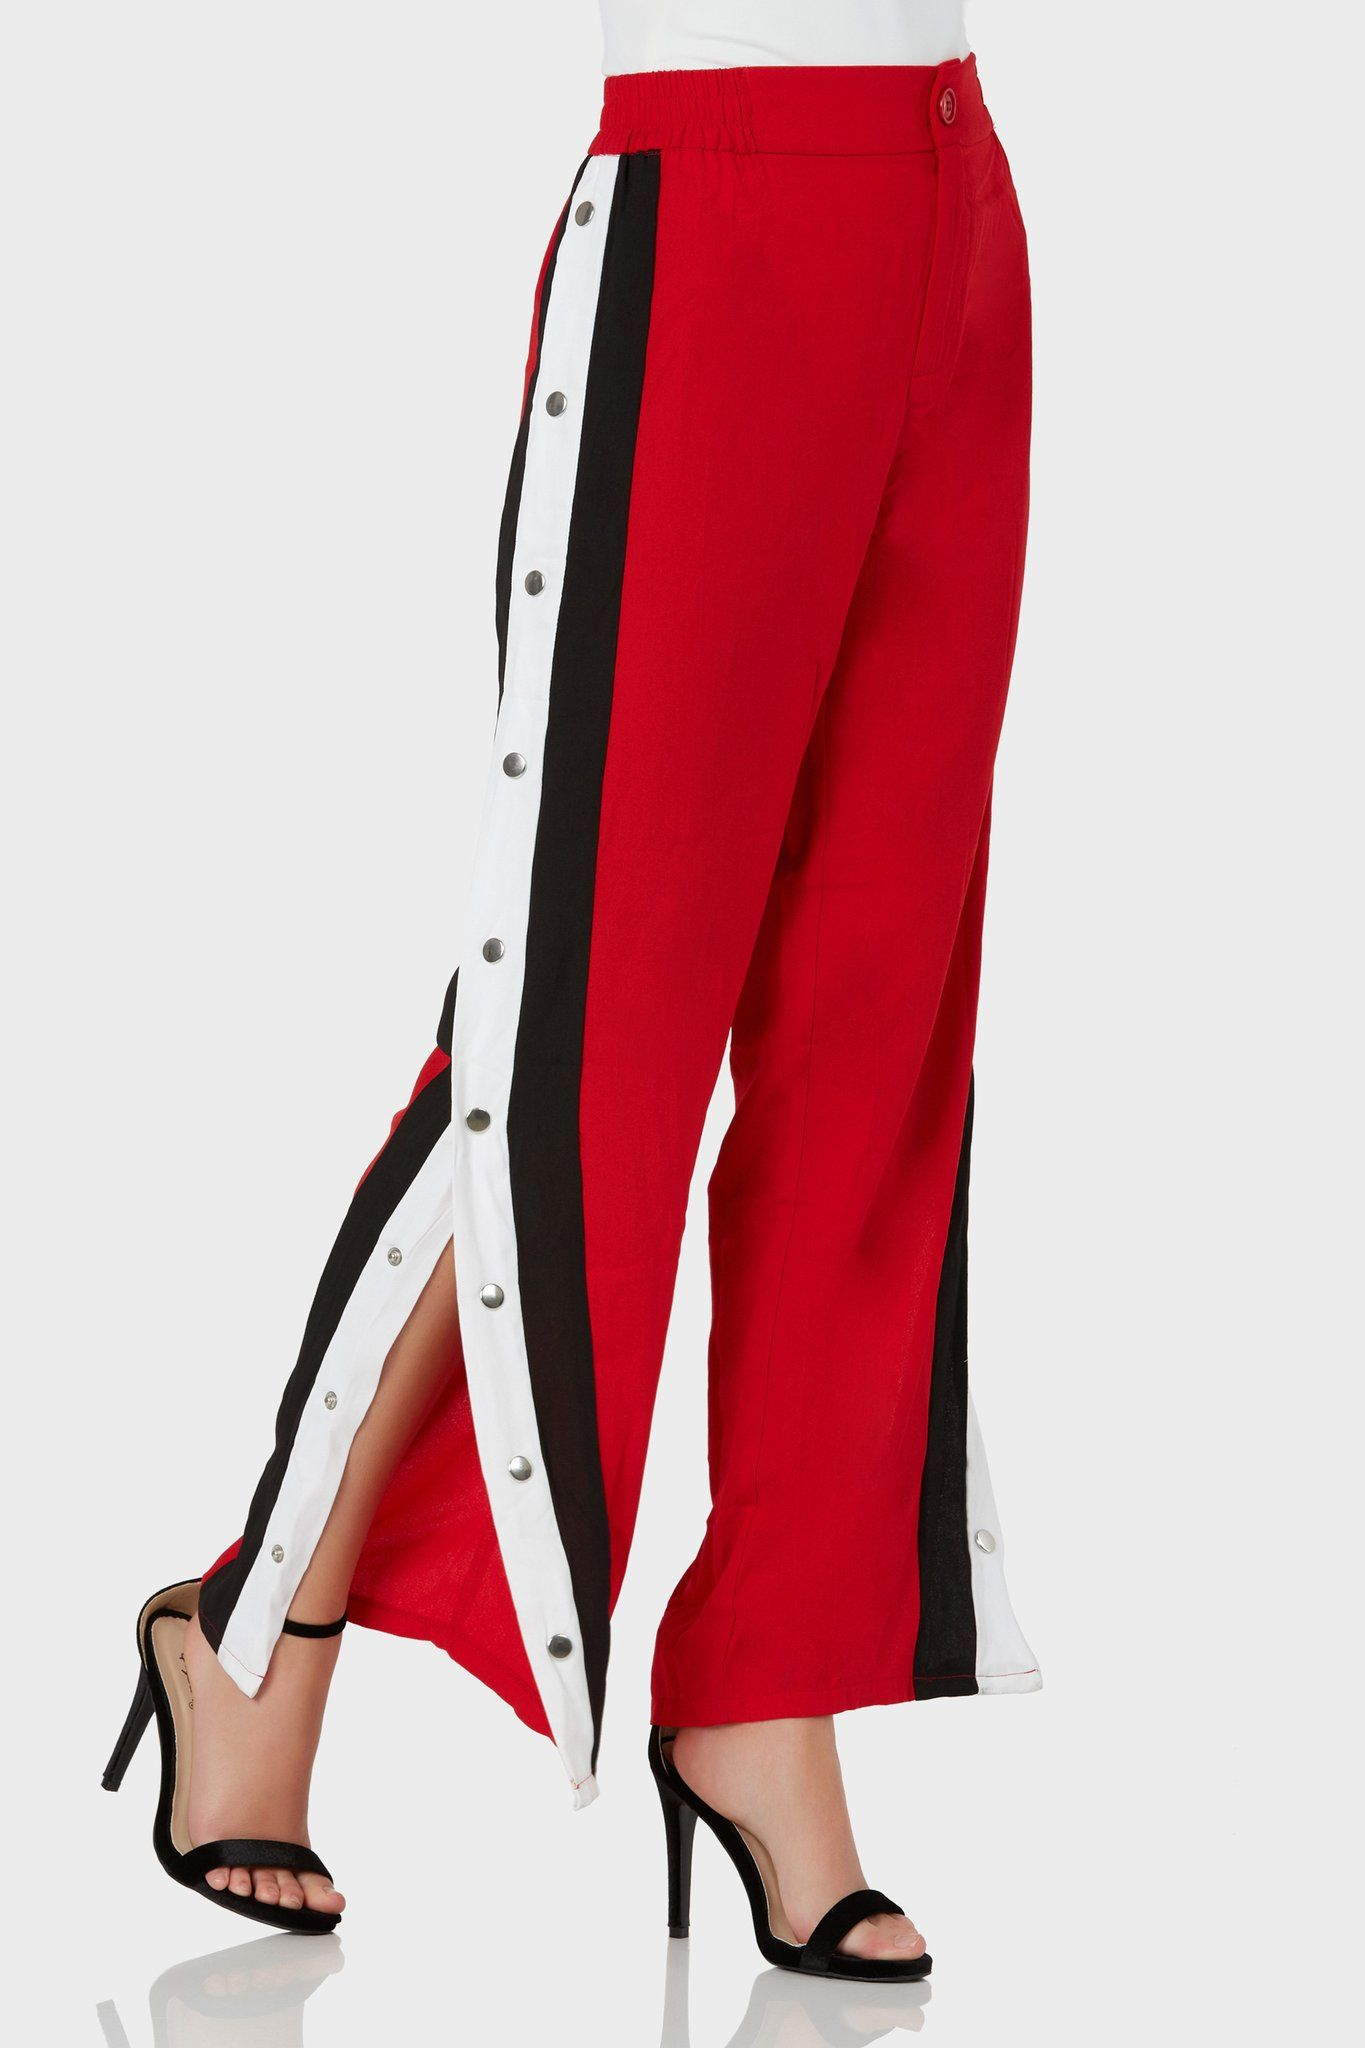 9a3115b3ed93 Trendy high rise pants with button zip closure. Contrast stripe detailing  with snap buttons down each side.